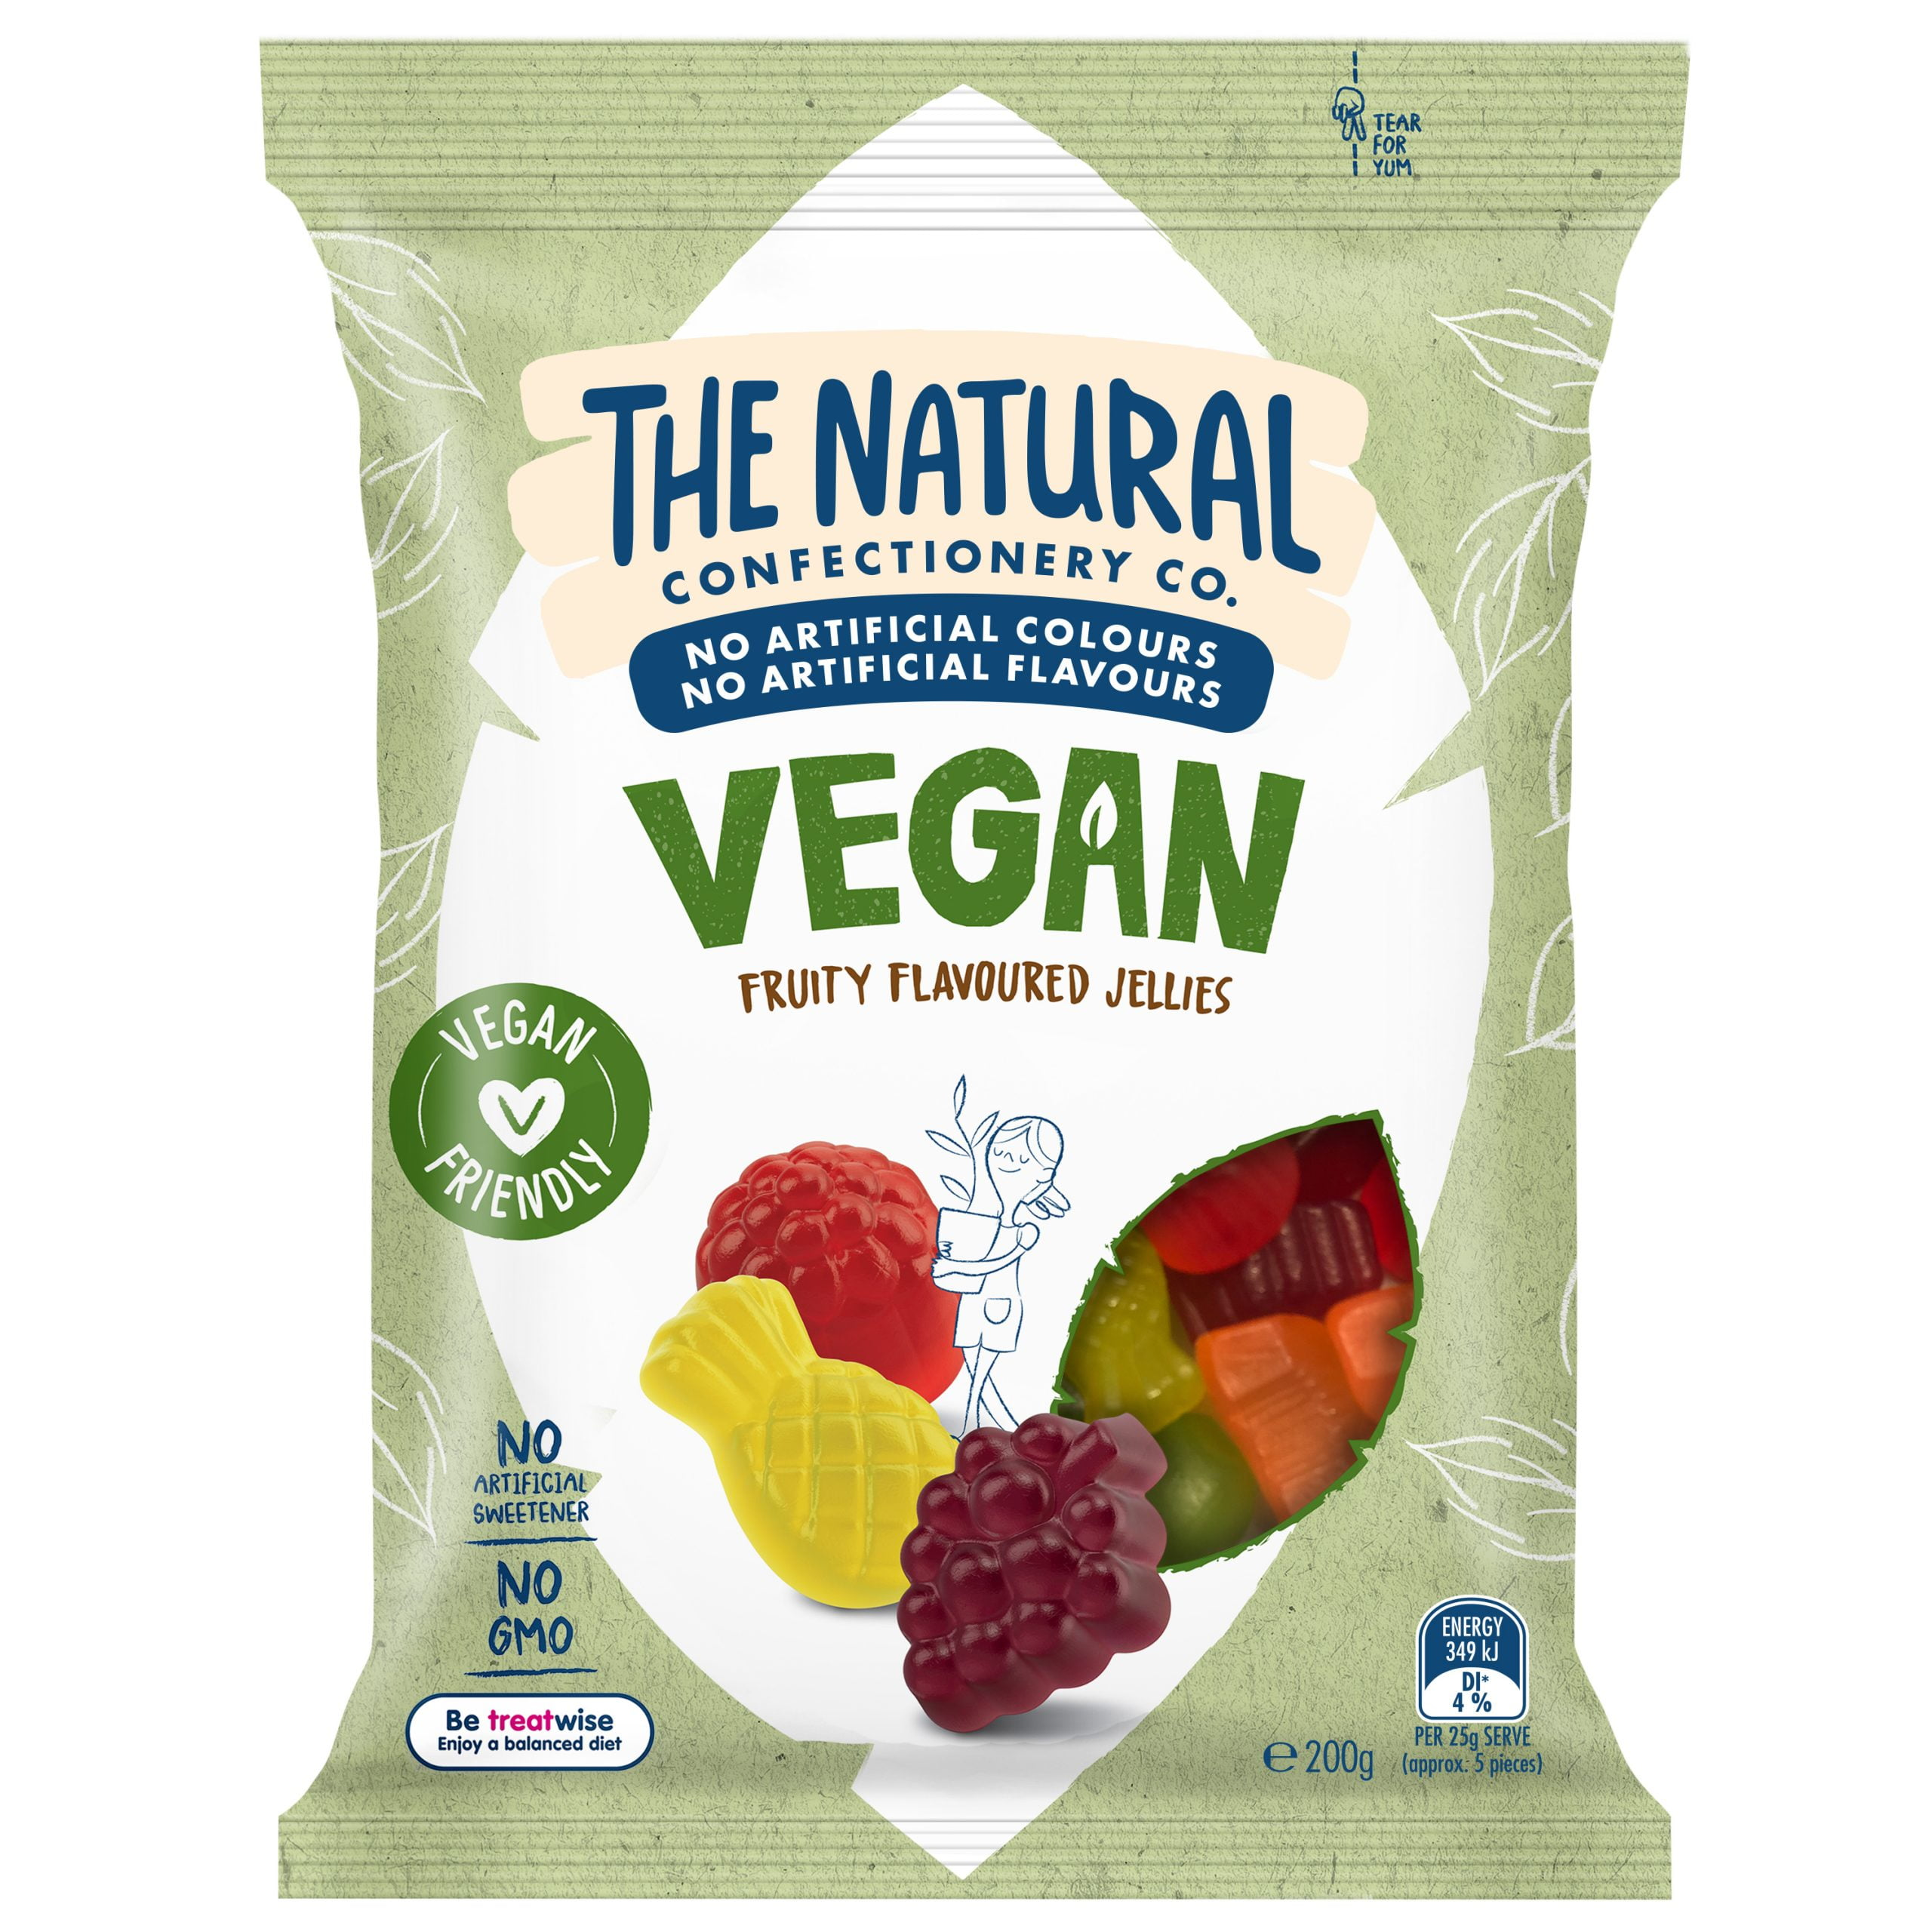 Natural Confectionery Co launches vegan range